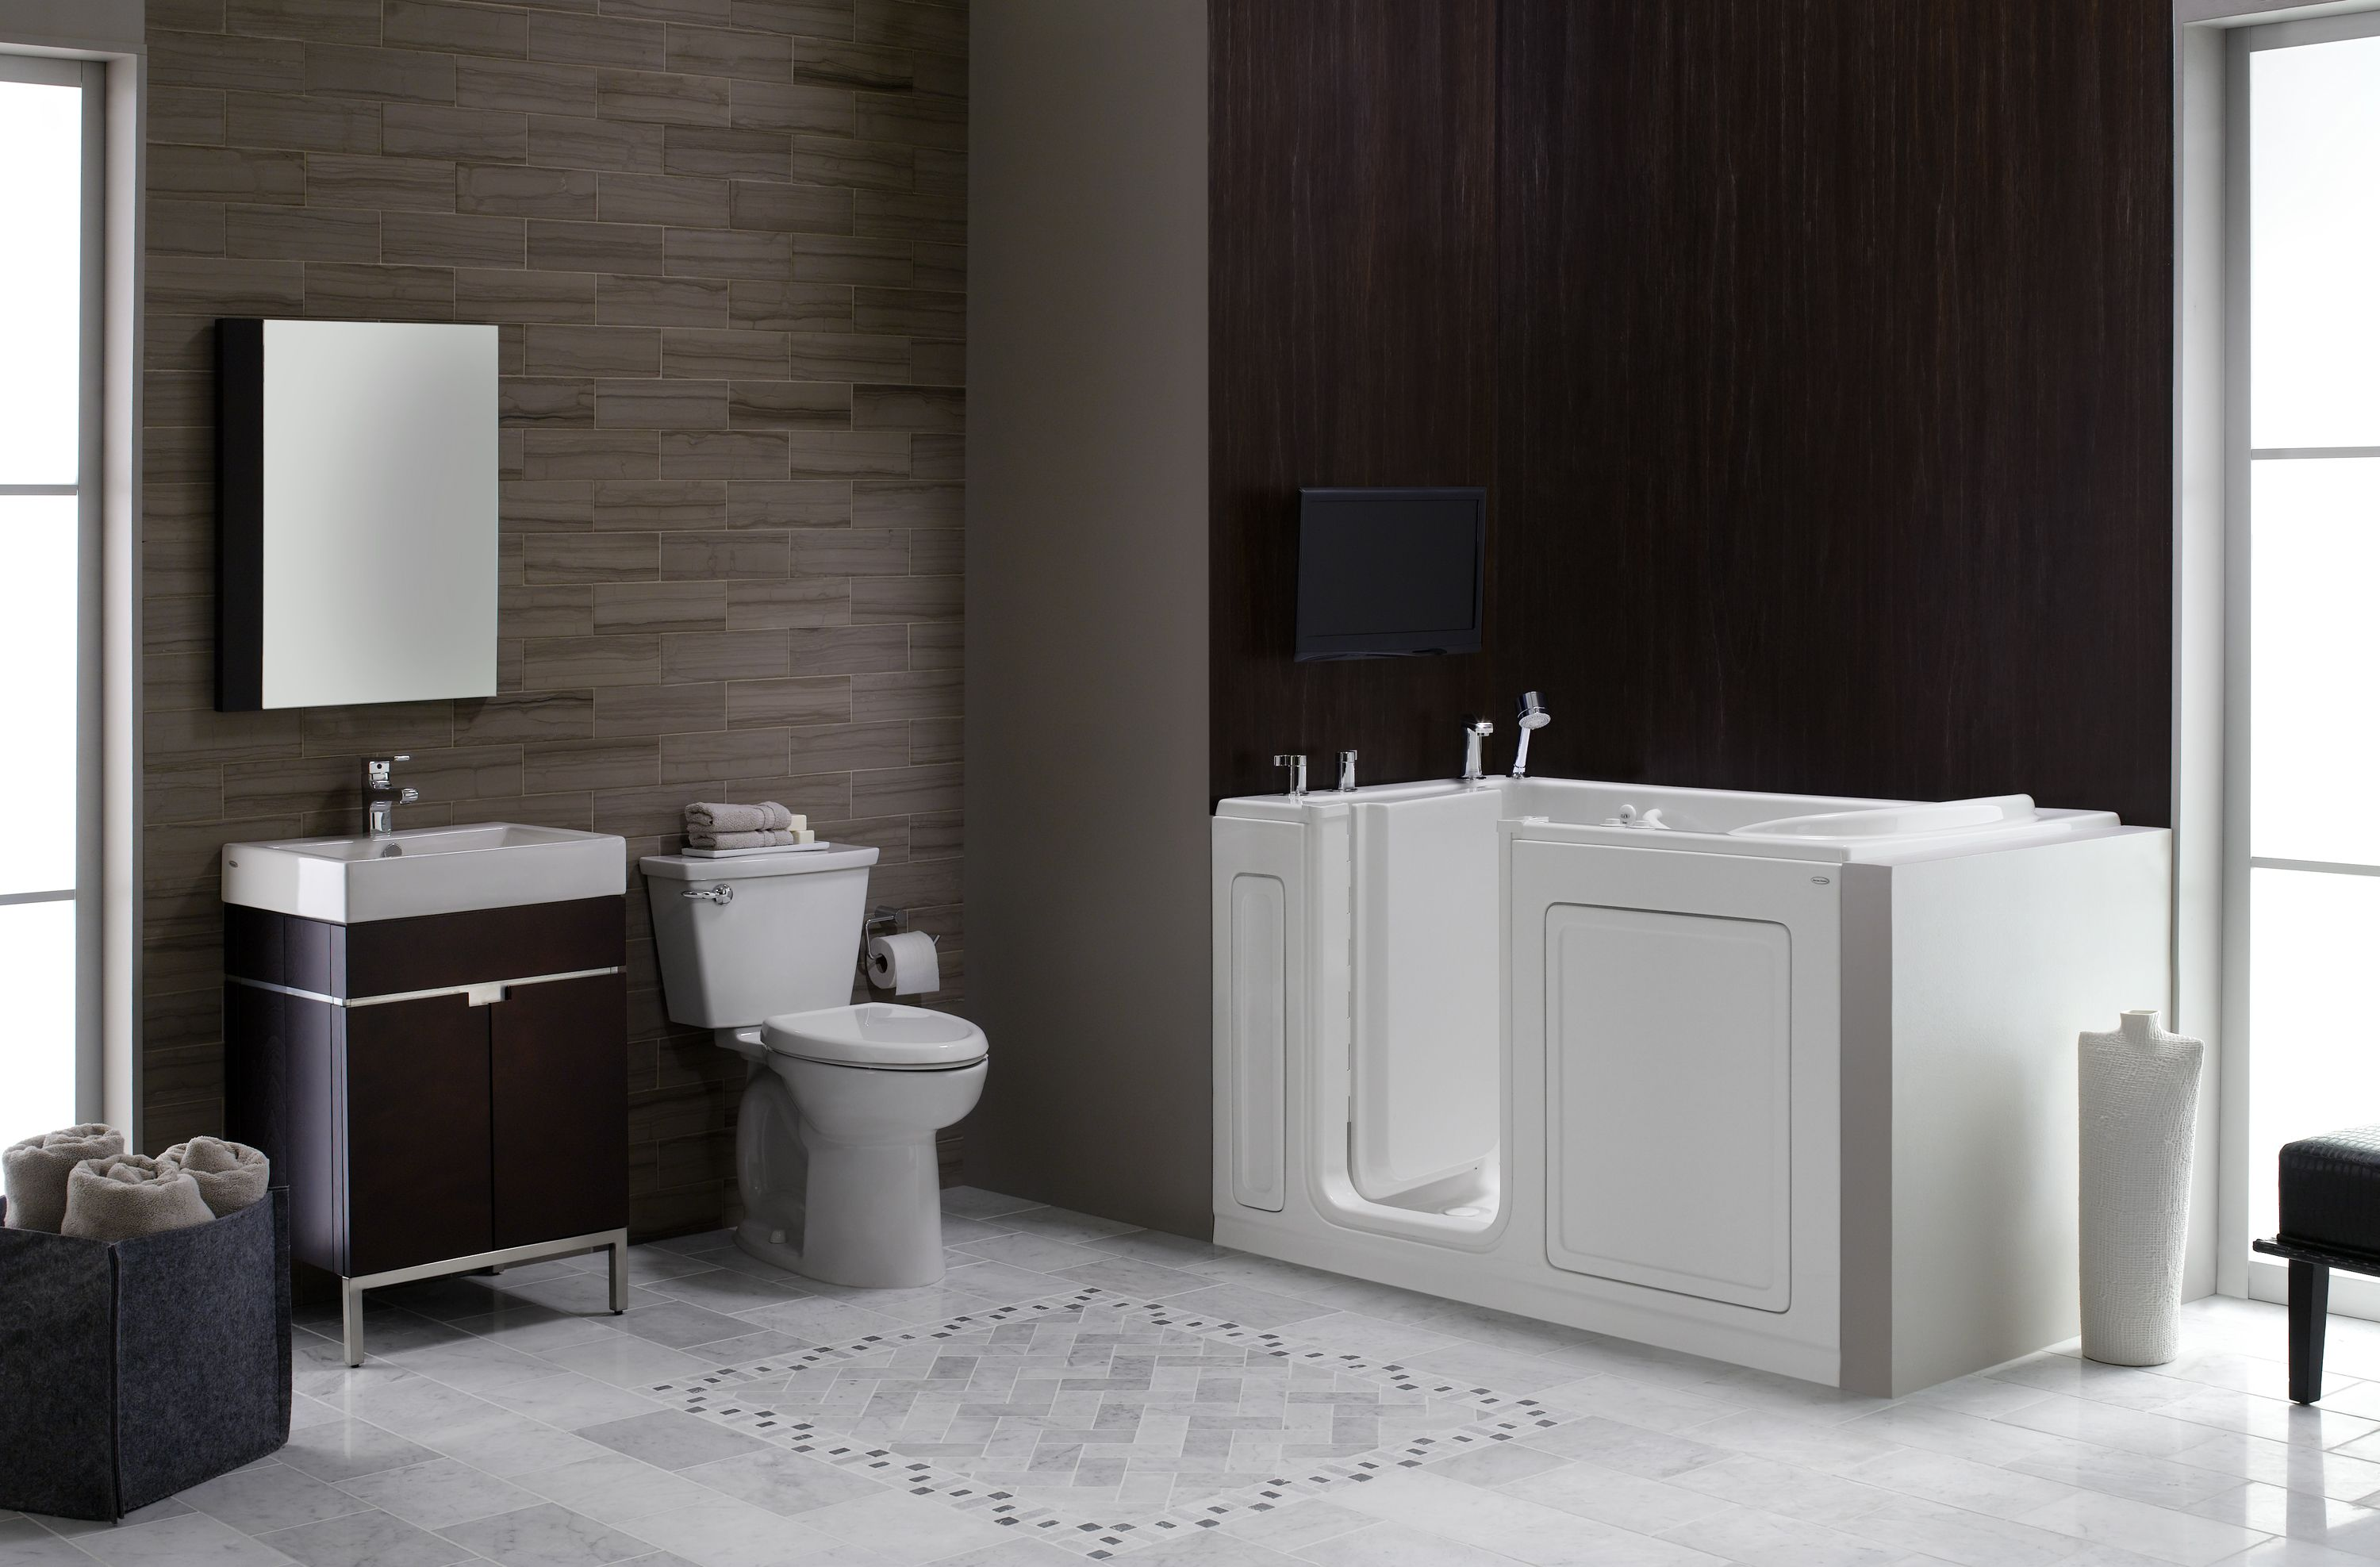 Enjoy A Comfortable Accessible Bathing Experience With An